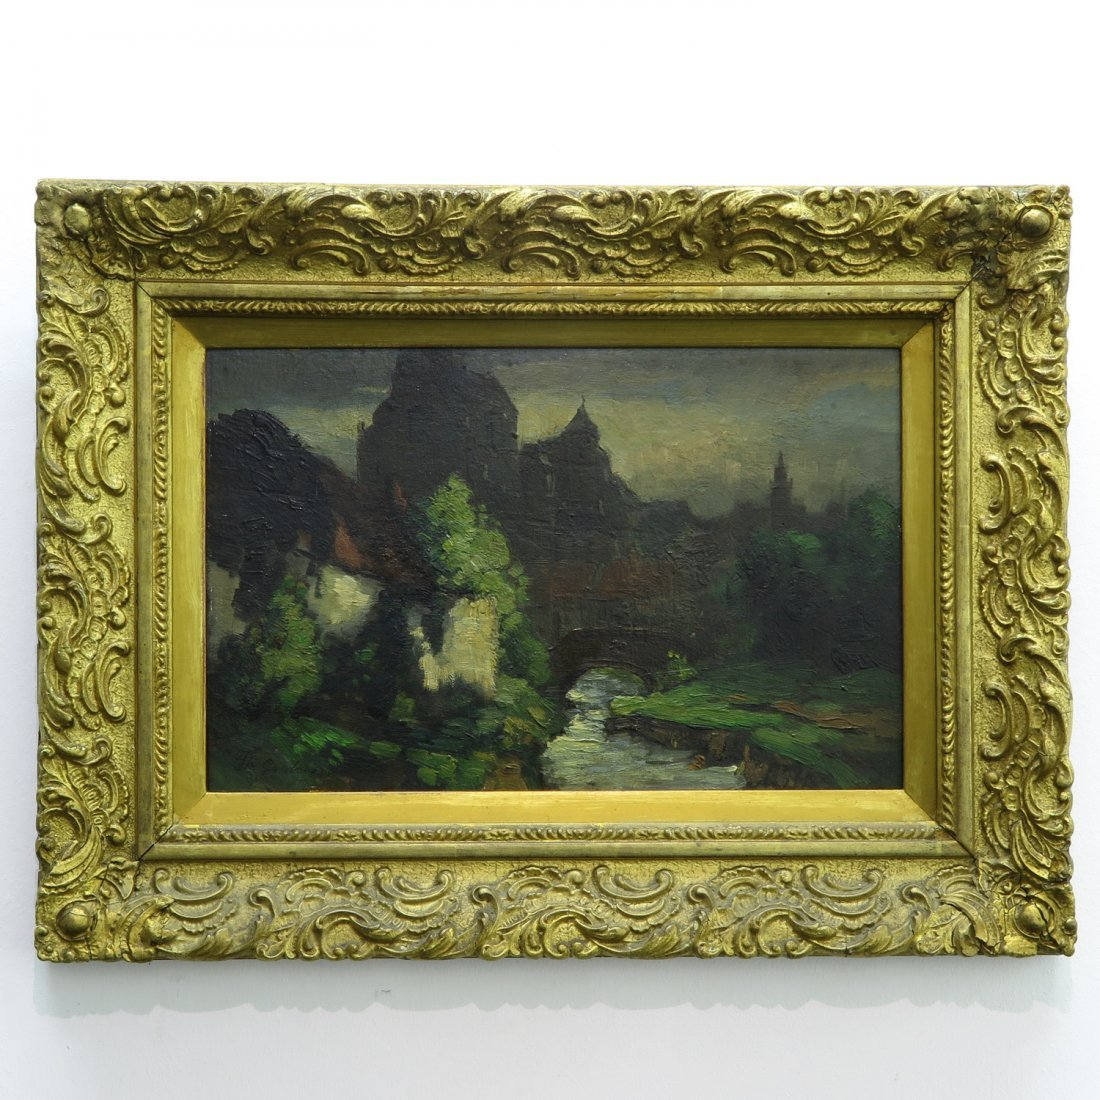 Signed Theodor Goedvriend Oil on Canvas